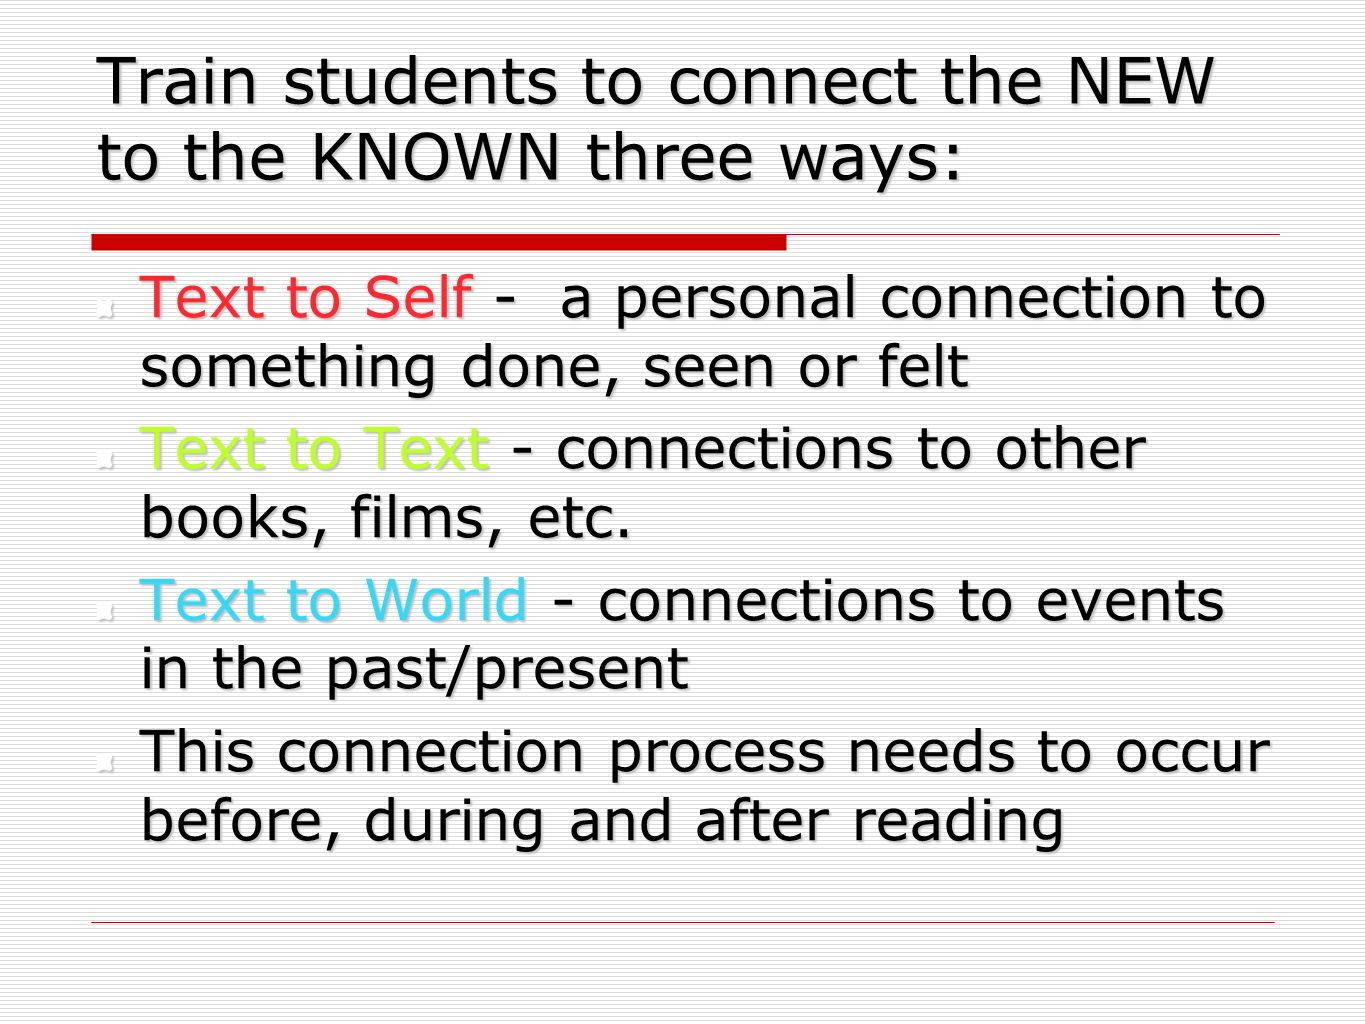 Train students to connect the NEW to the KNOWN three ways: